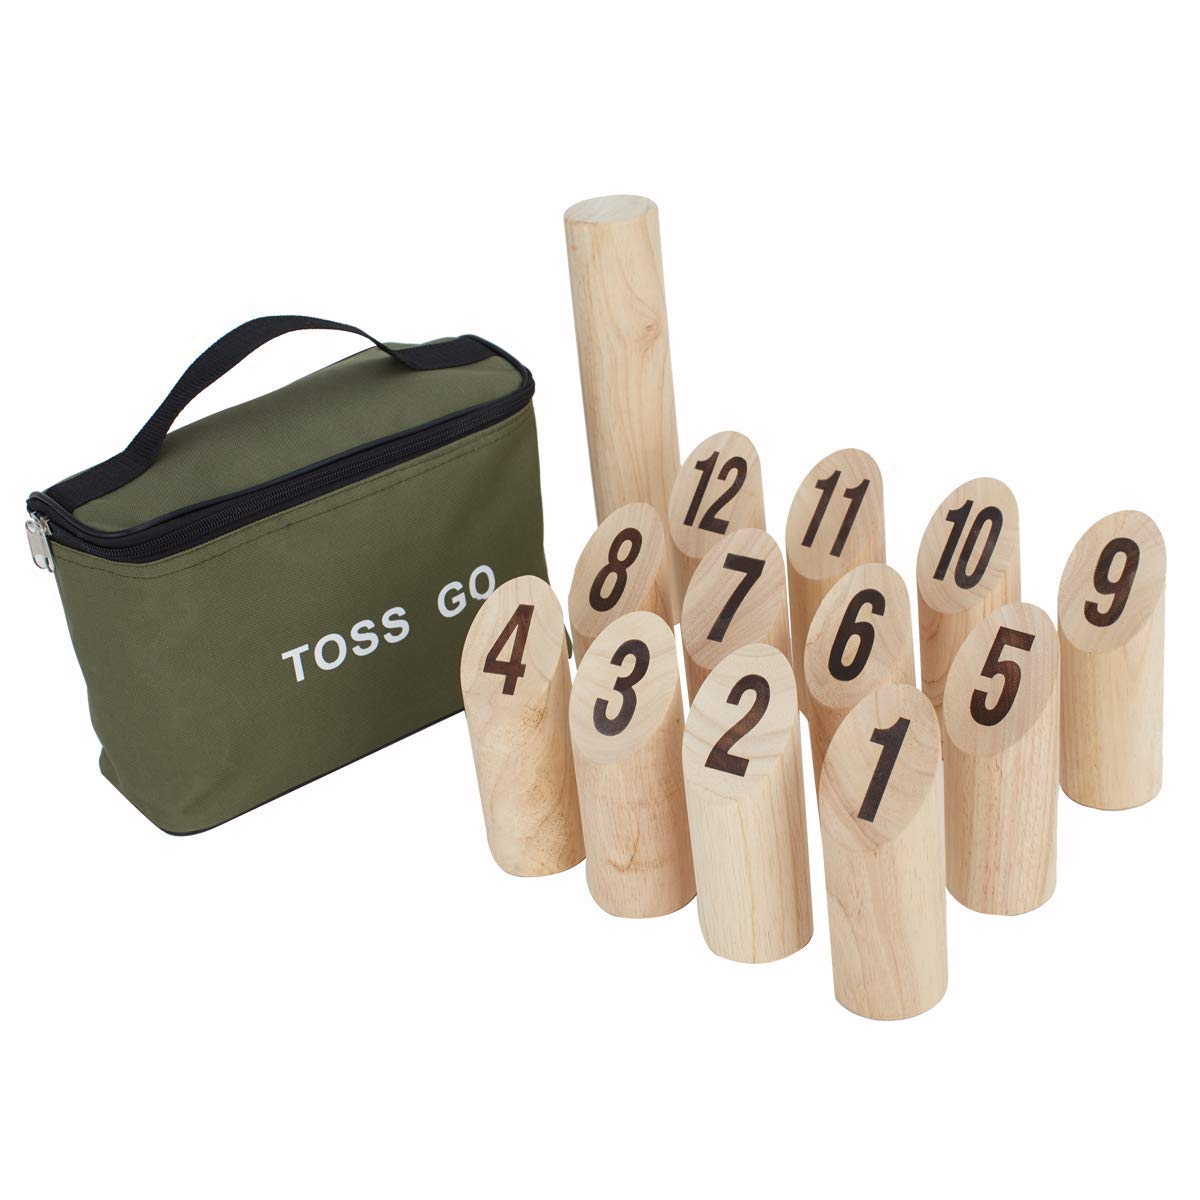 Toss Go Molkky Outdoor Sport- Rubberwood Skittle Scatter Numbers Kubb with Carrying Bag - Outdoor Yard and Lawn Games for Kids and Adults